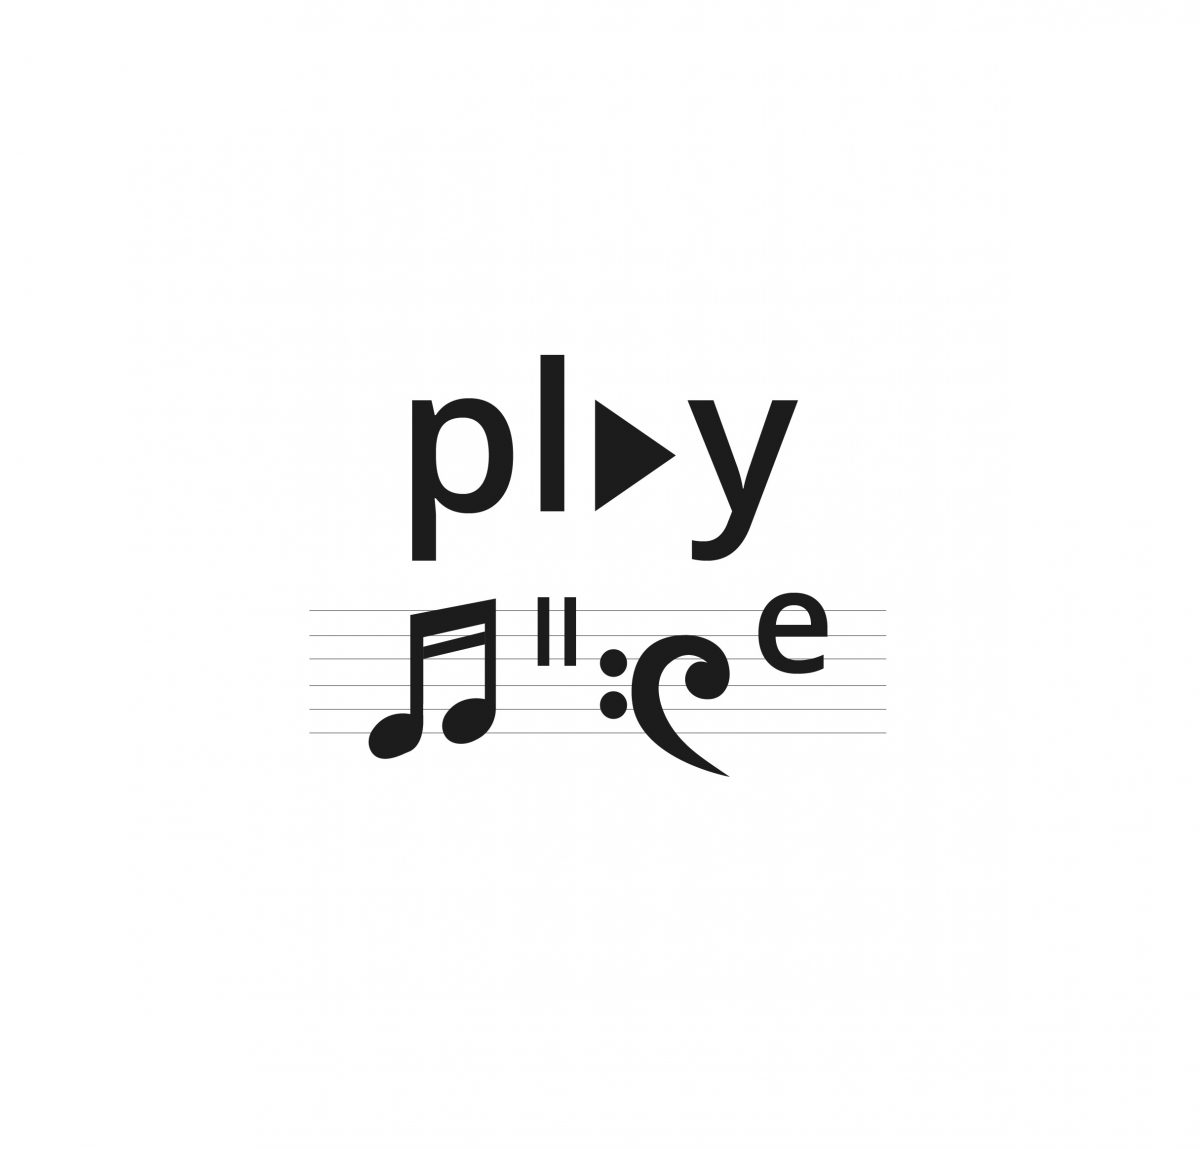 In Class Activity 6: Play Nice